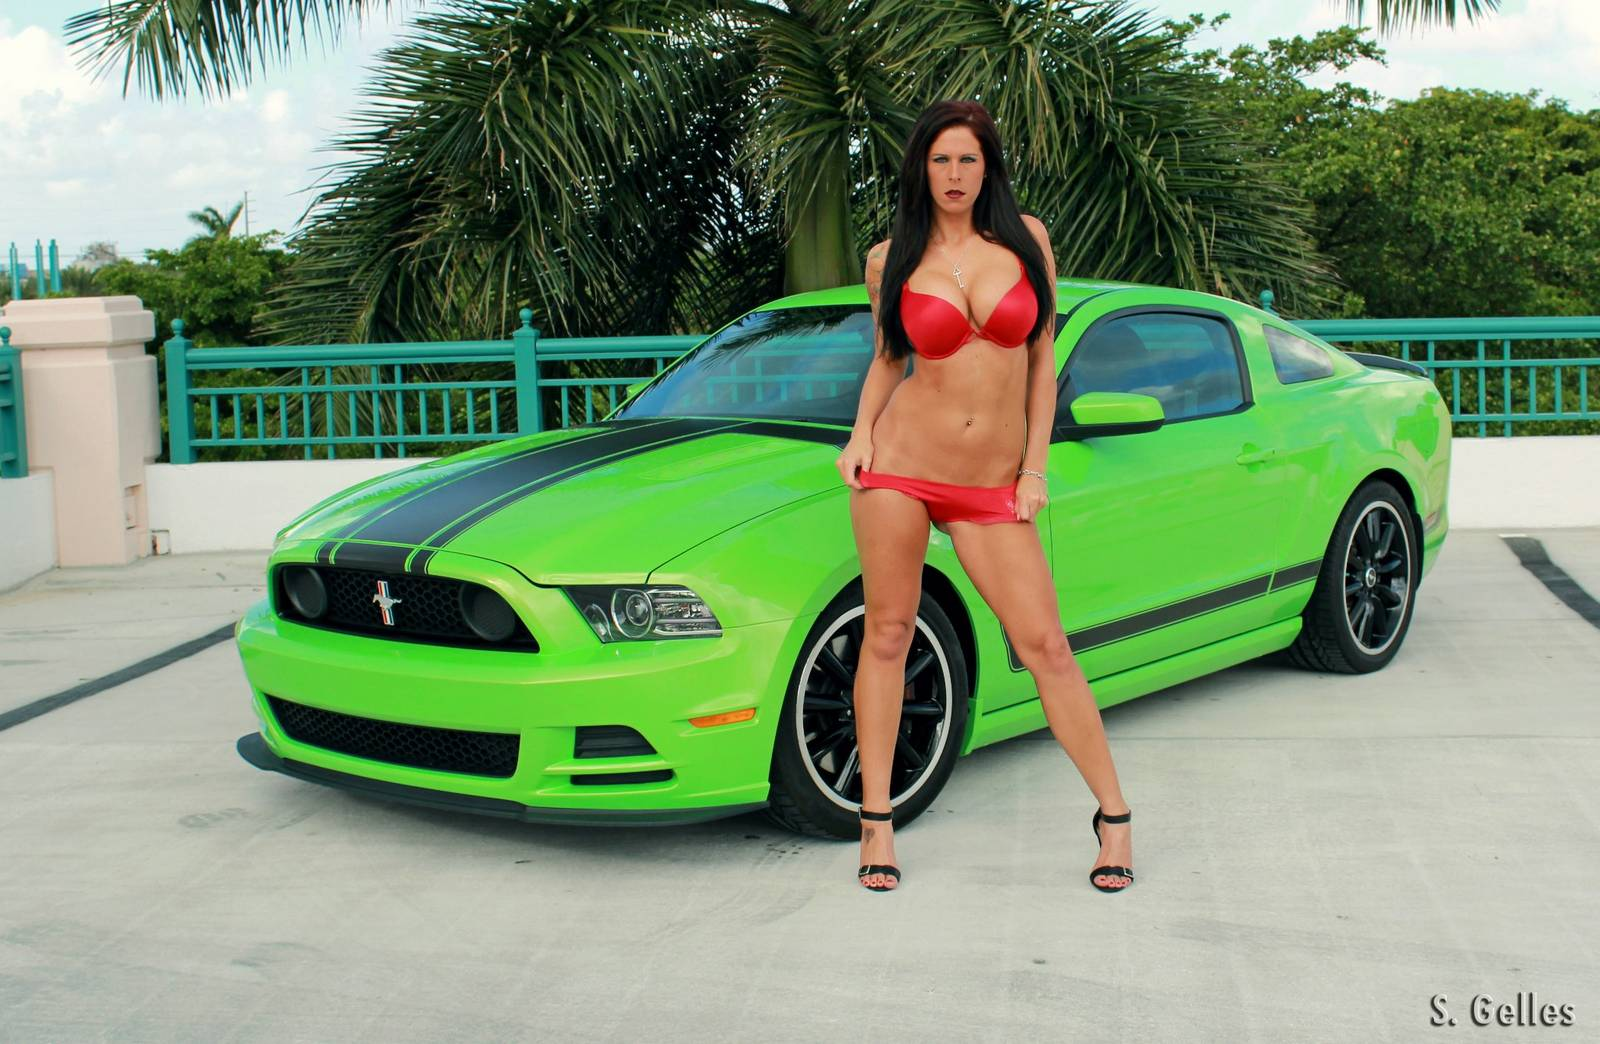 Krista Elyse A Model and Mustang Drag Racer